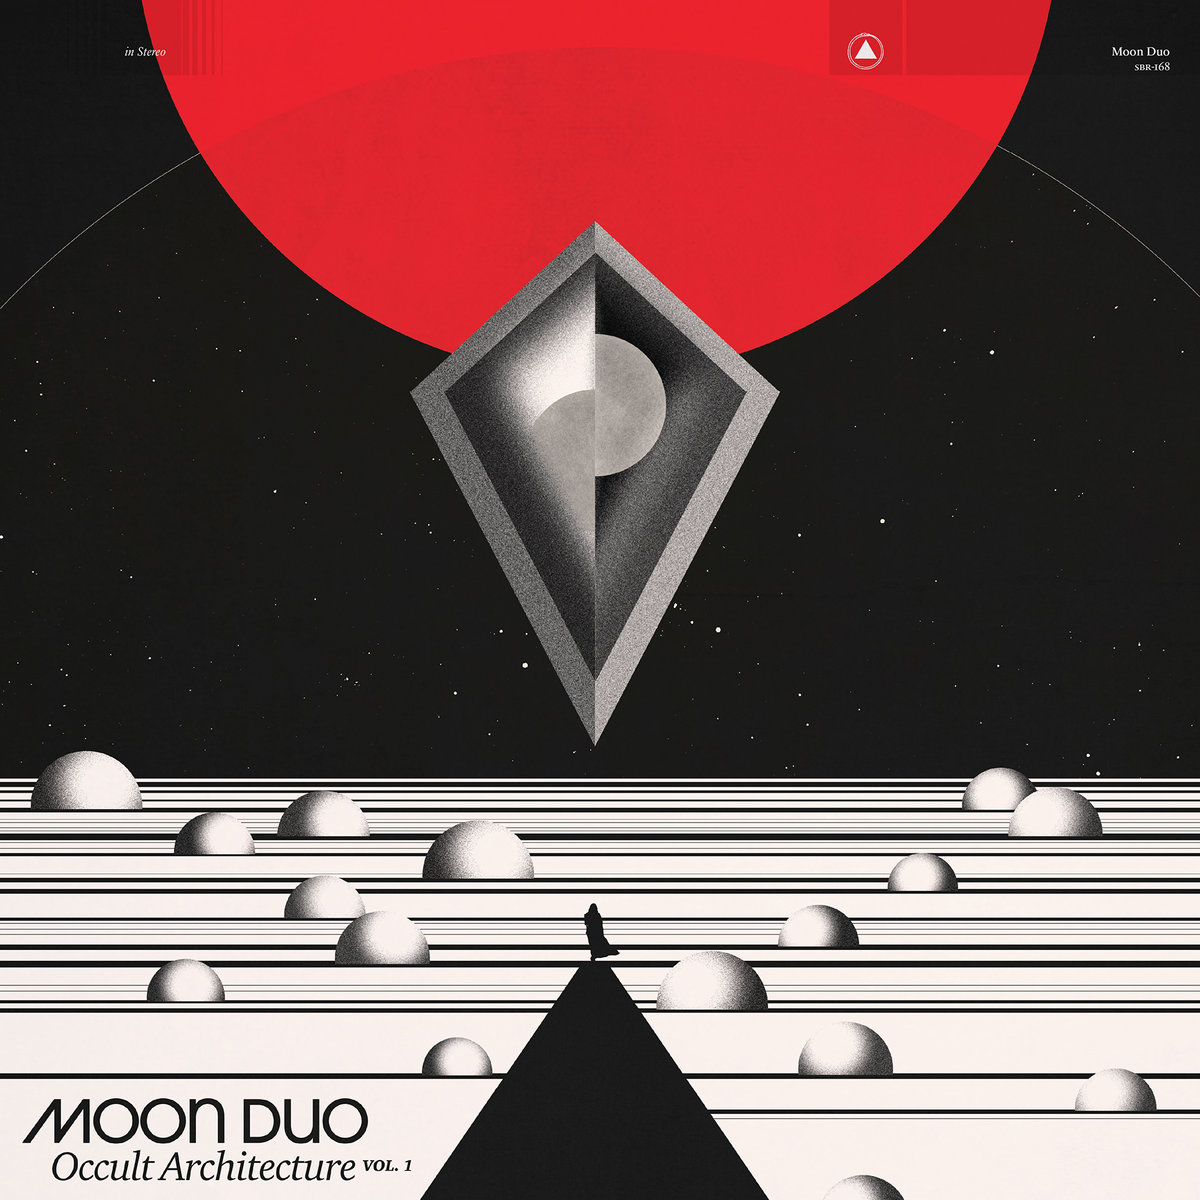 Moon Duo Occult Architecture